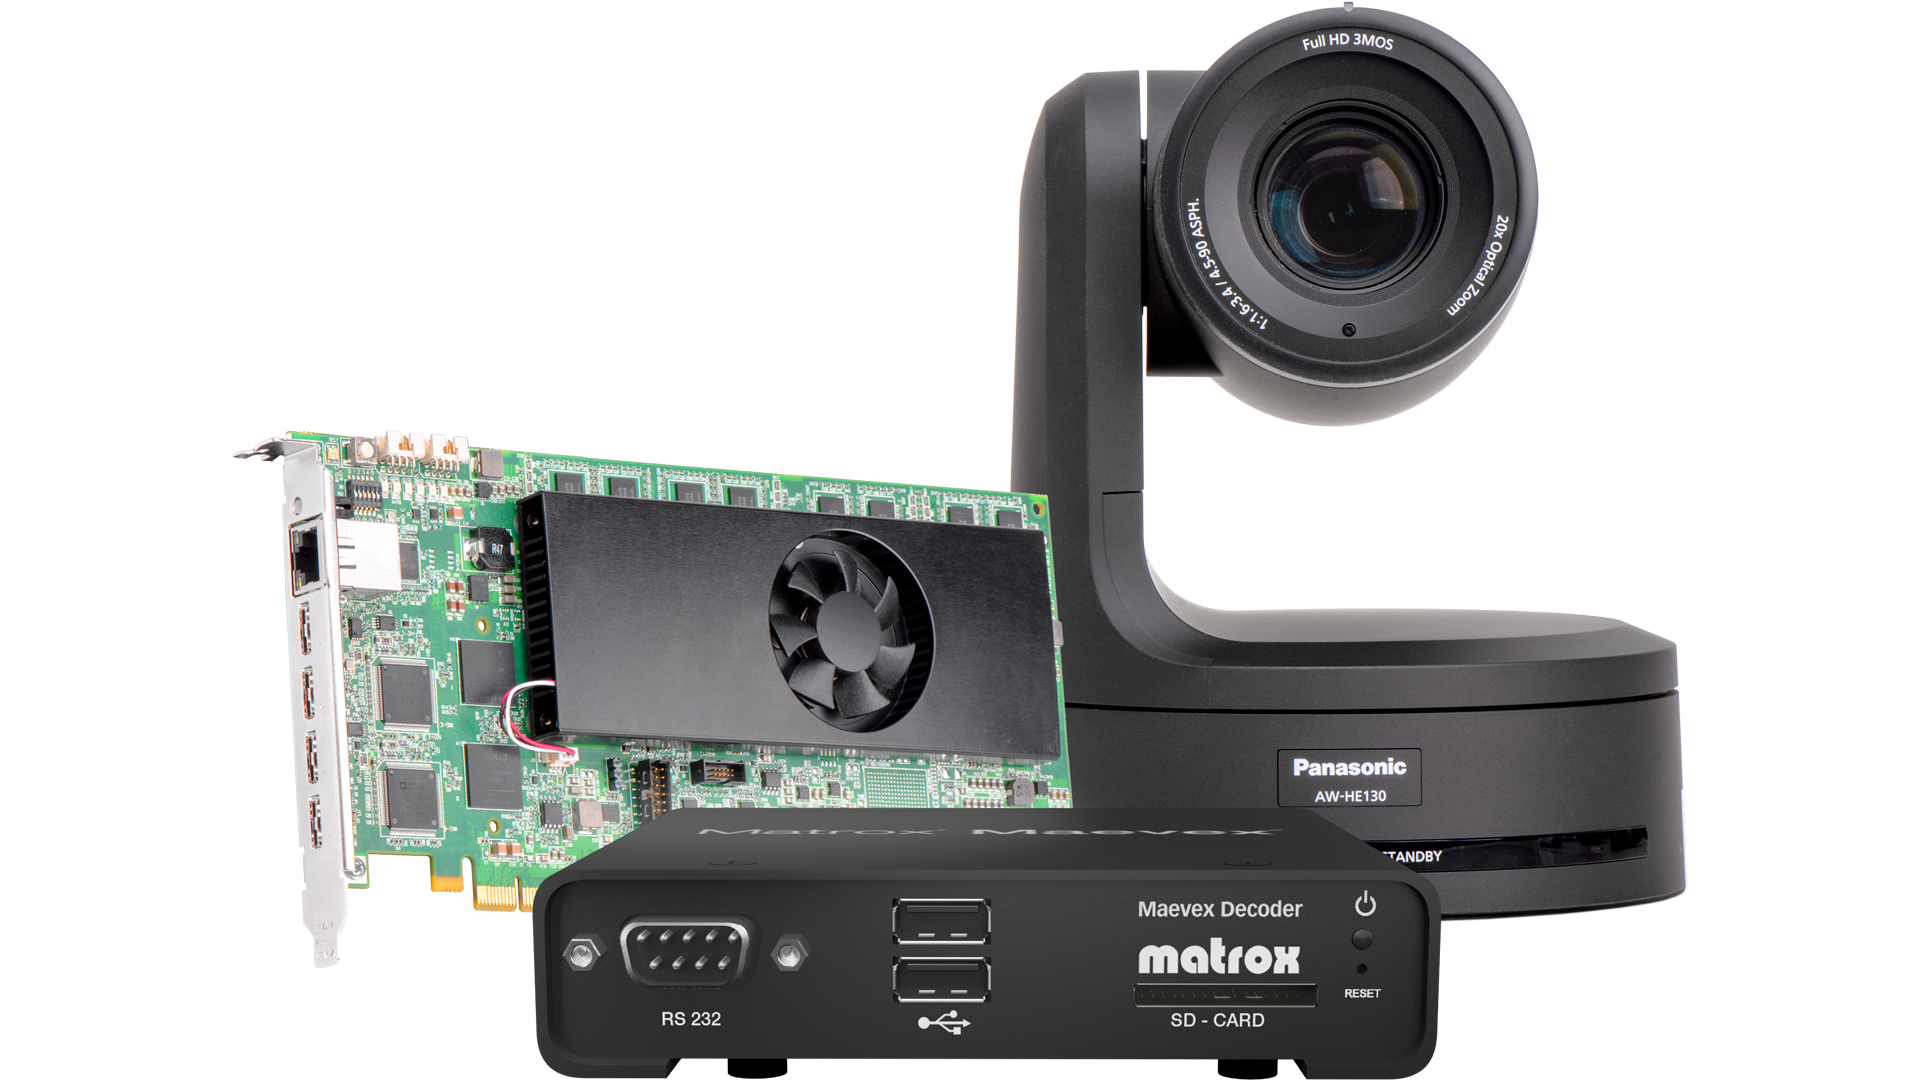 Maevex 5100, Mura iPX 4K Capture/Decode and Panasonic Camera